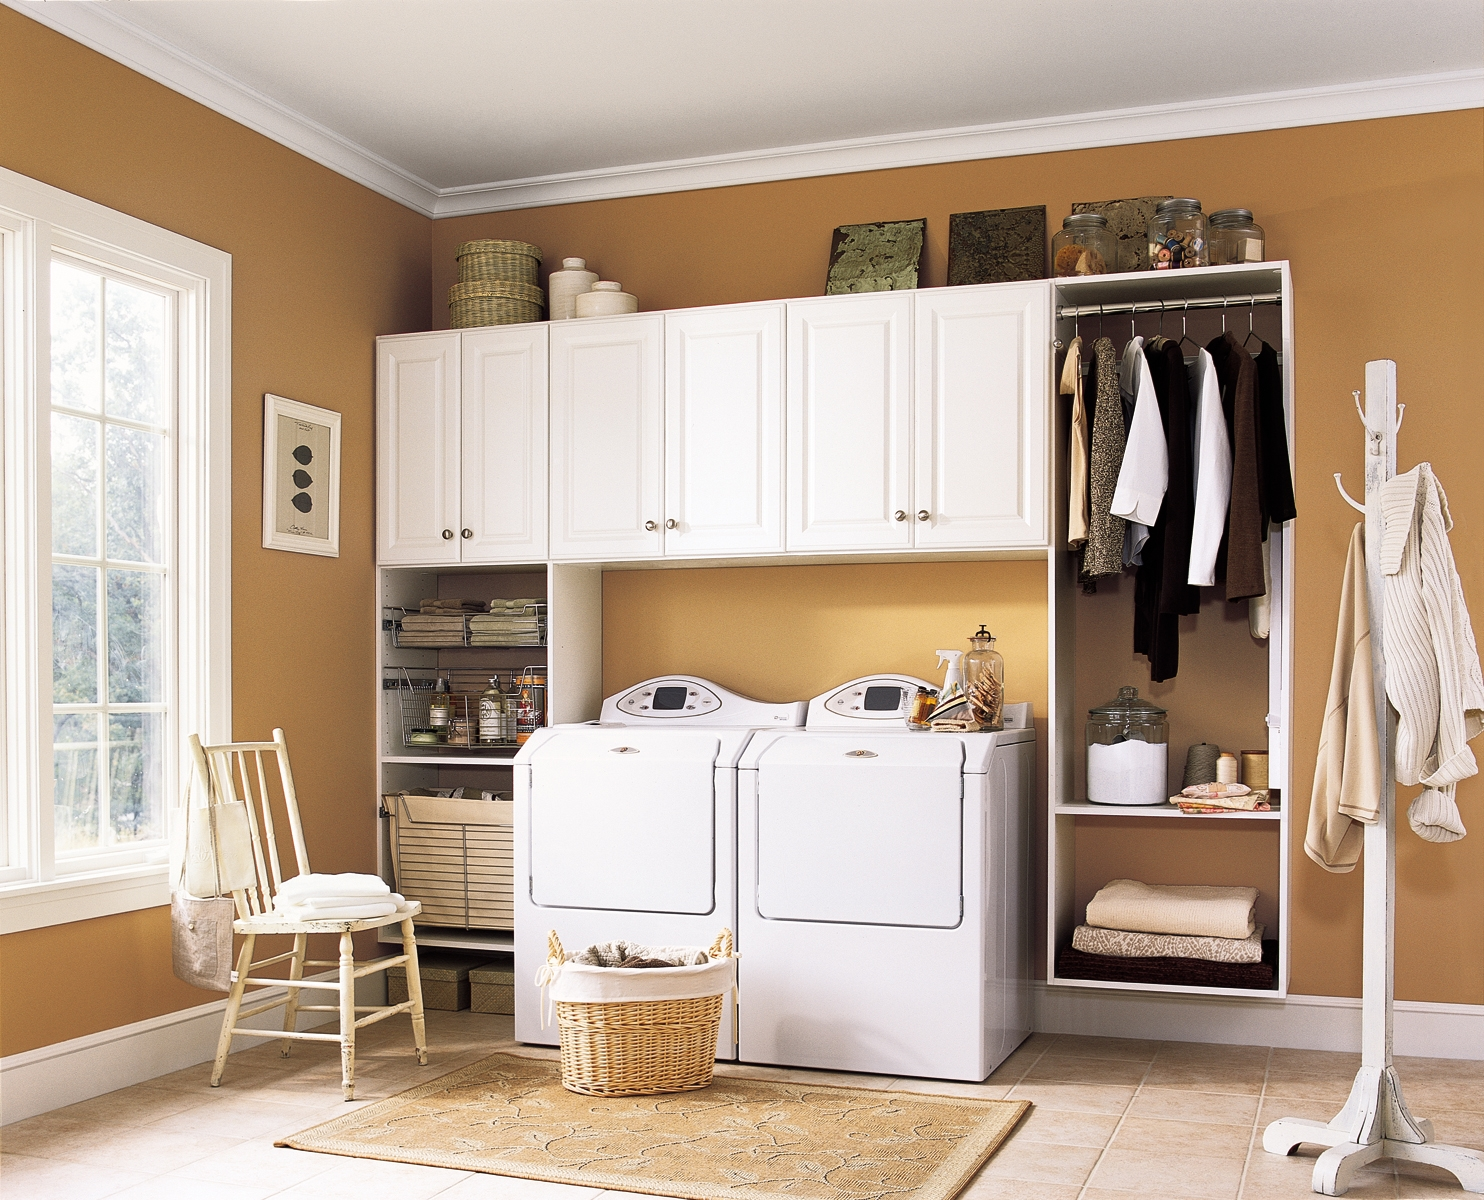 Design Laundry Design laundry room storage organization and inspiration cabinets